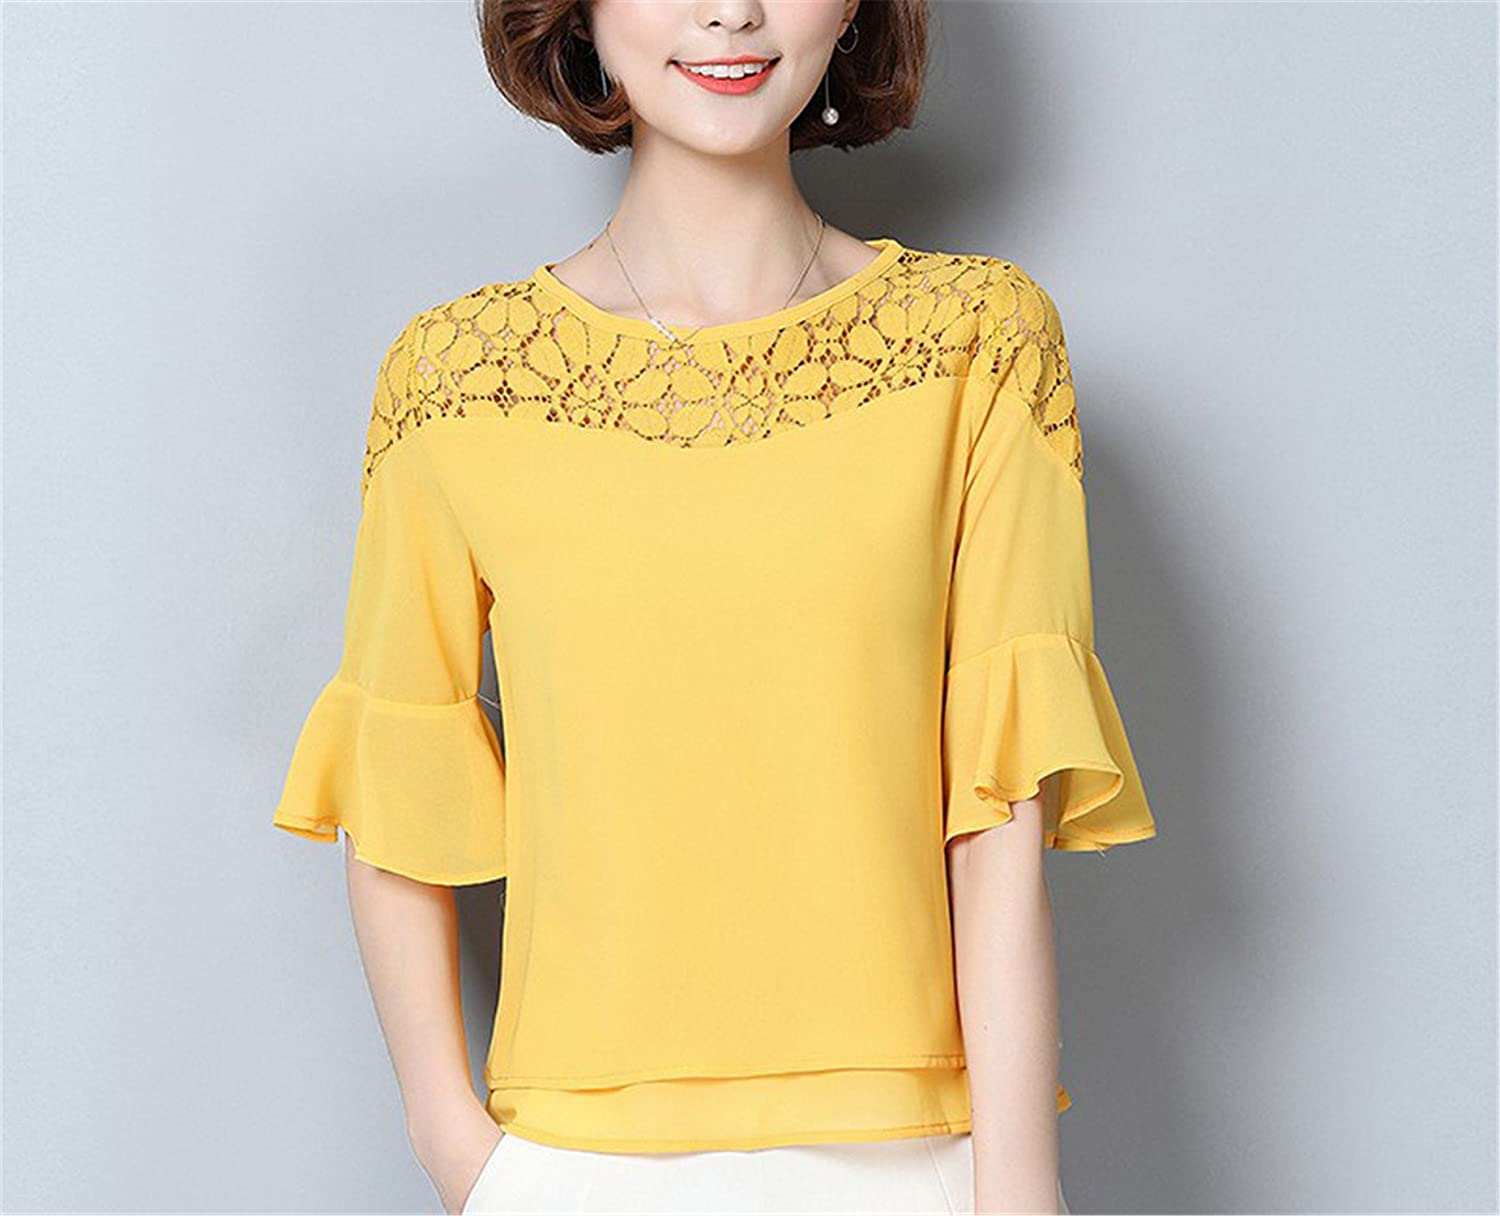 OUXIANGJU Women Summer Chiffon Blouse Short Sleeve Patchwork White Lace Tops Plus Size Shirts at Amazon Womens Clothing store: